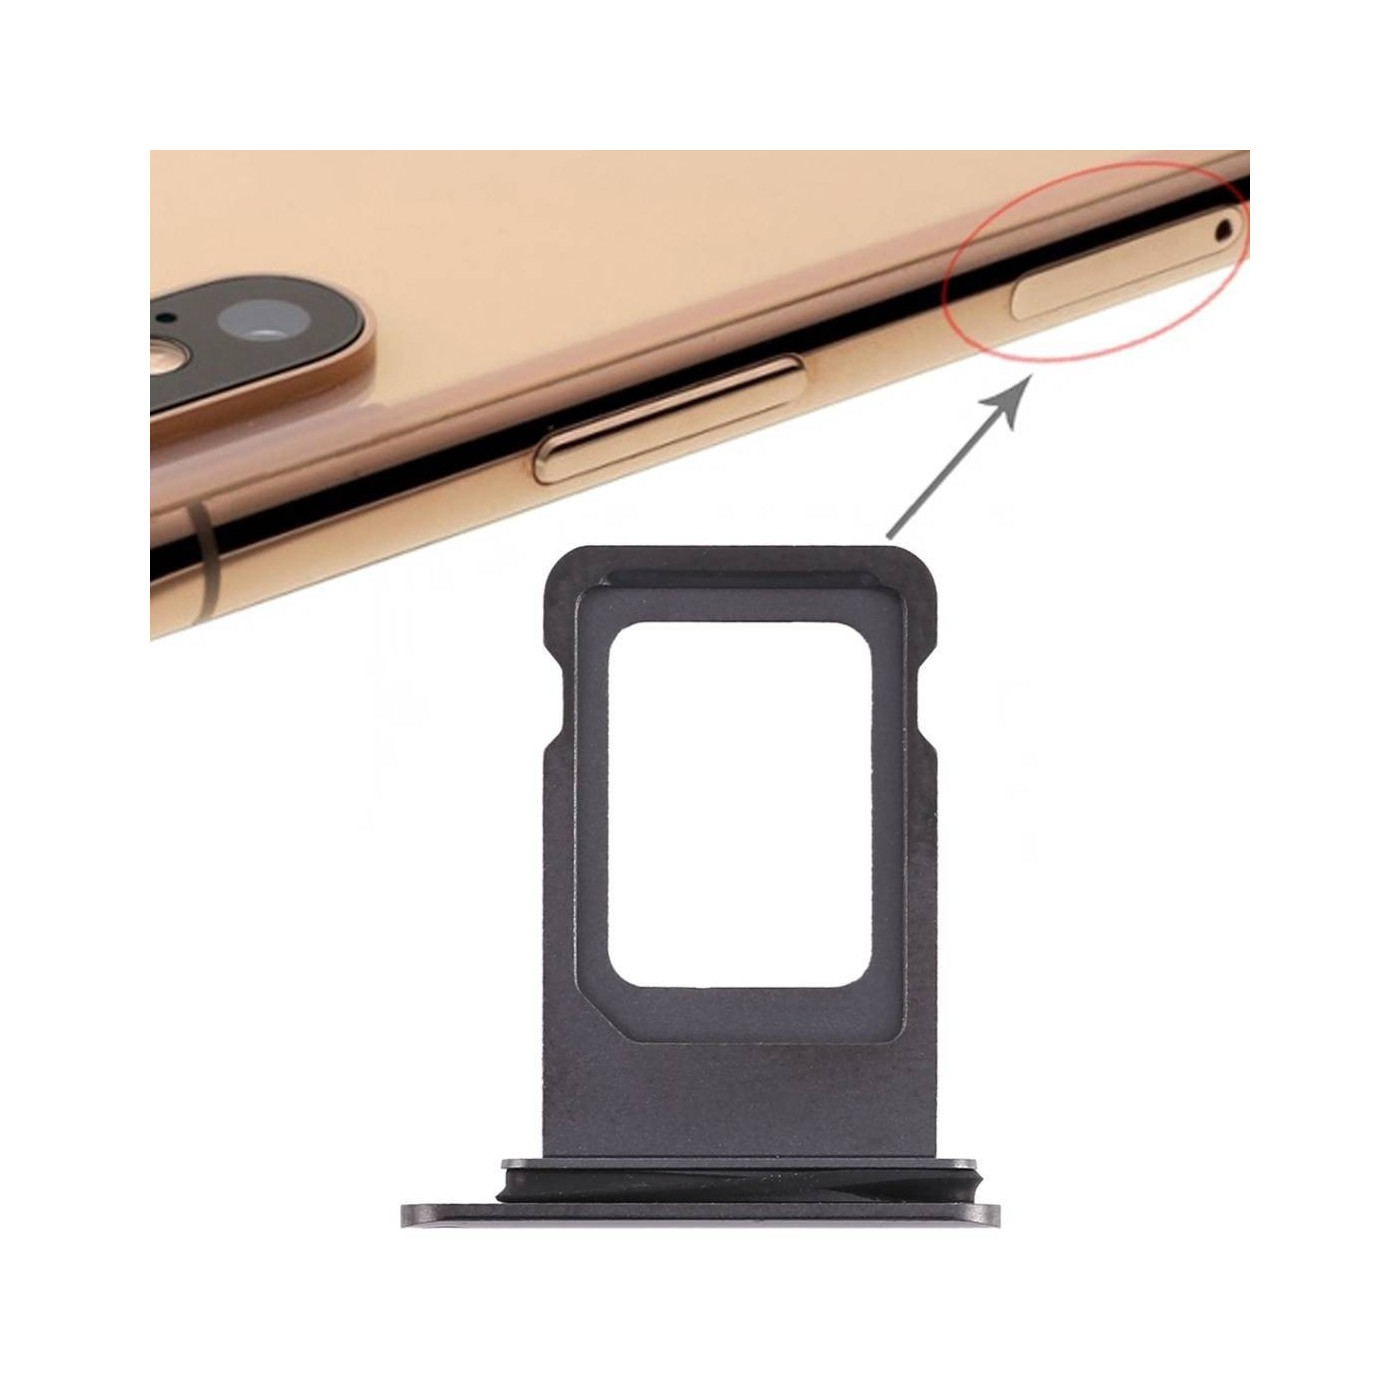 SIM CARD HOLDER Apple iPhone XS MAX BLACK SLOT SLIDE CARRIAGE TRAY REPLACEMENT